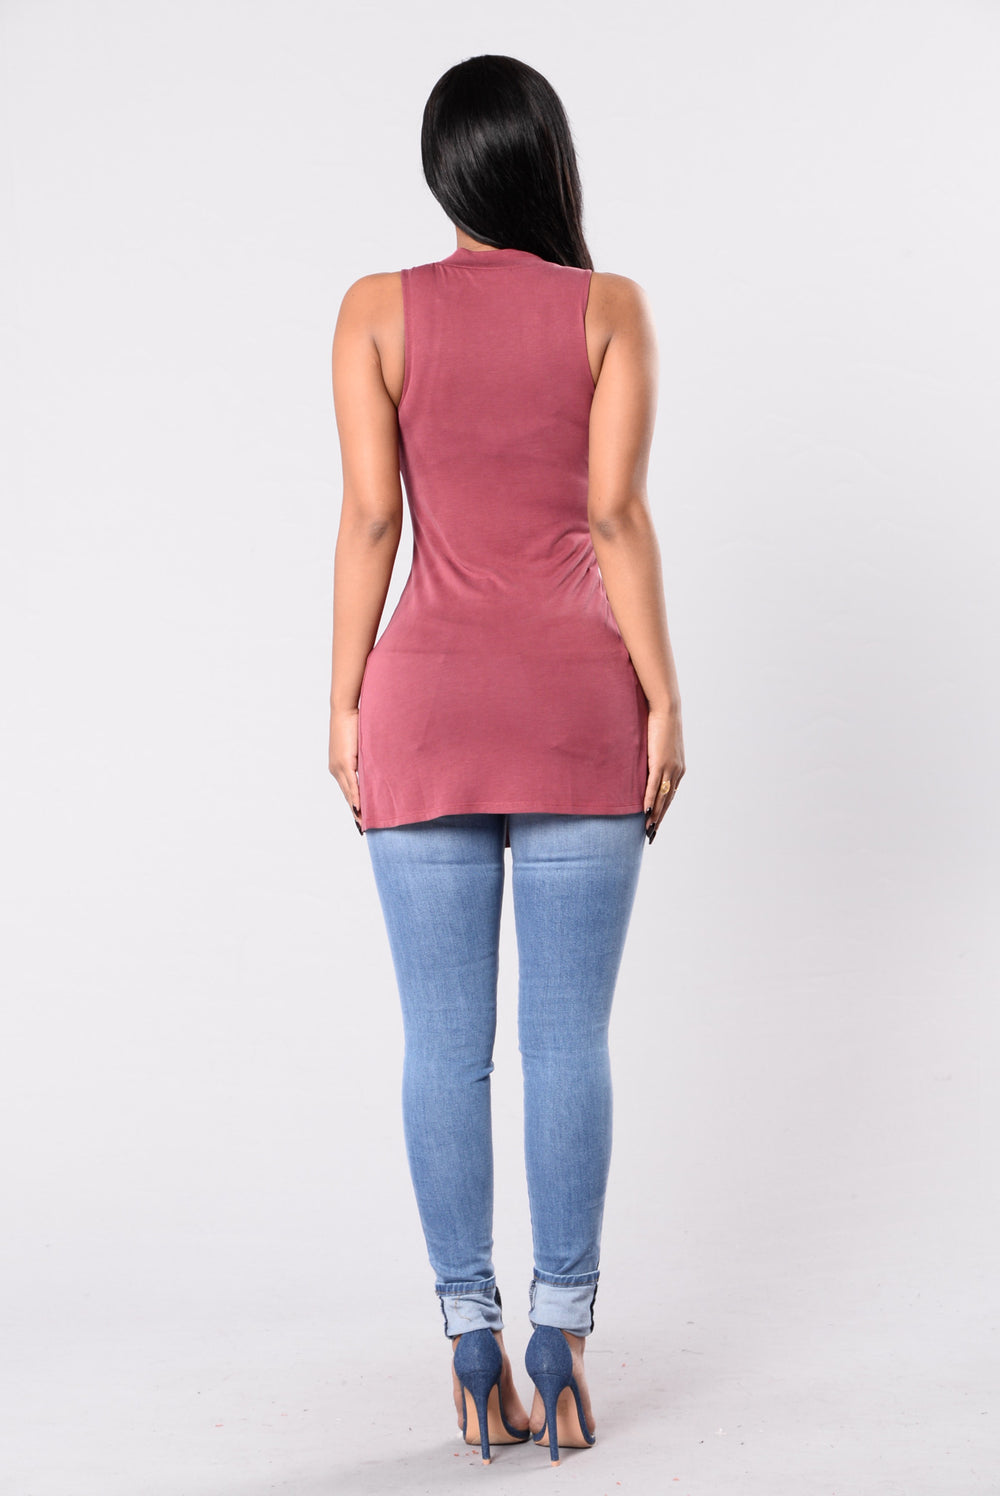 Temptations Top - Burgundy